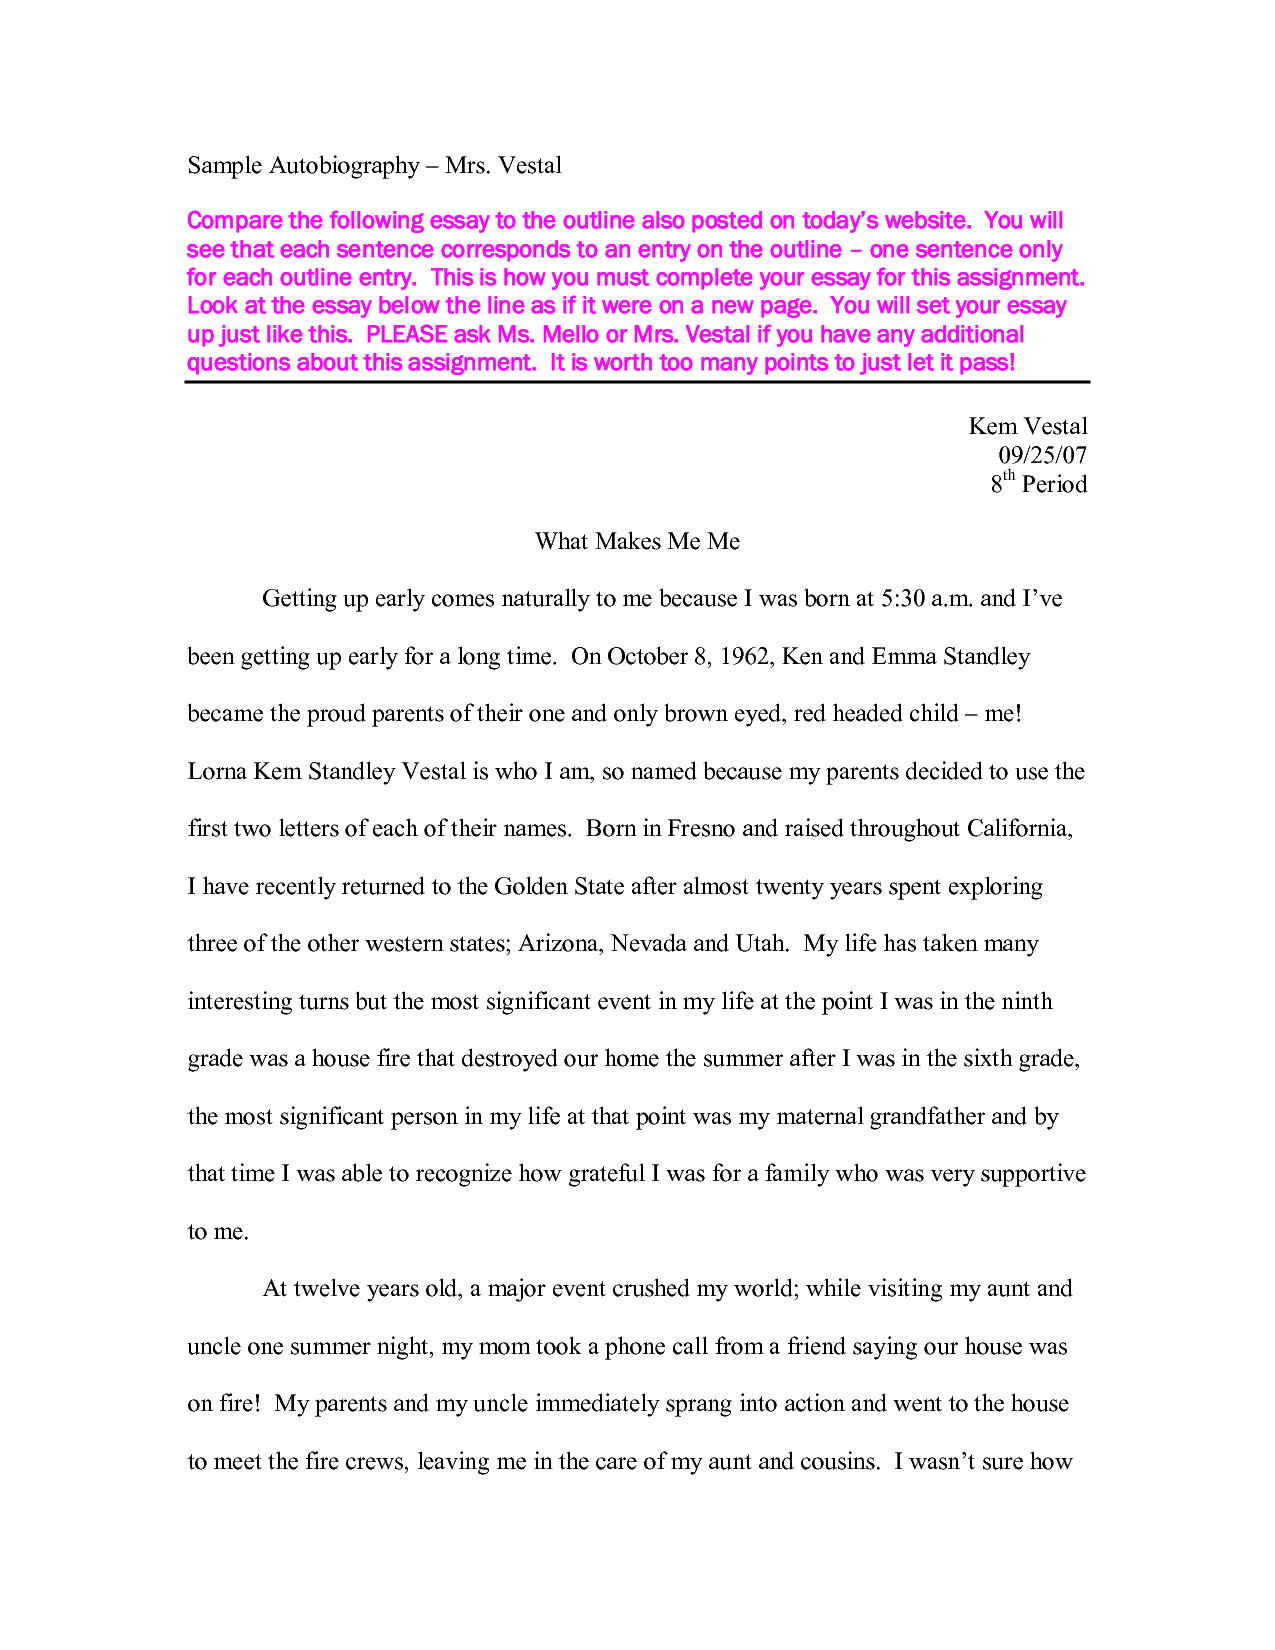 008 Autobiography Essay Example 88333 How To Write Good Incredible A Biographical Bibliography Biography About An Author Pdf Full